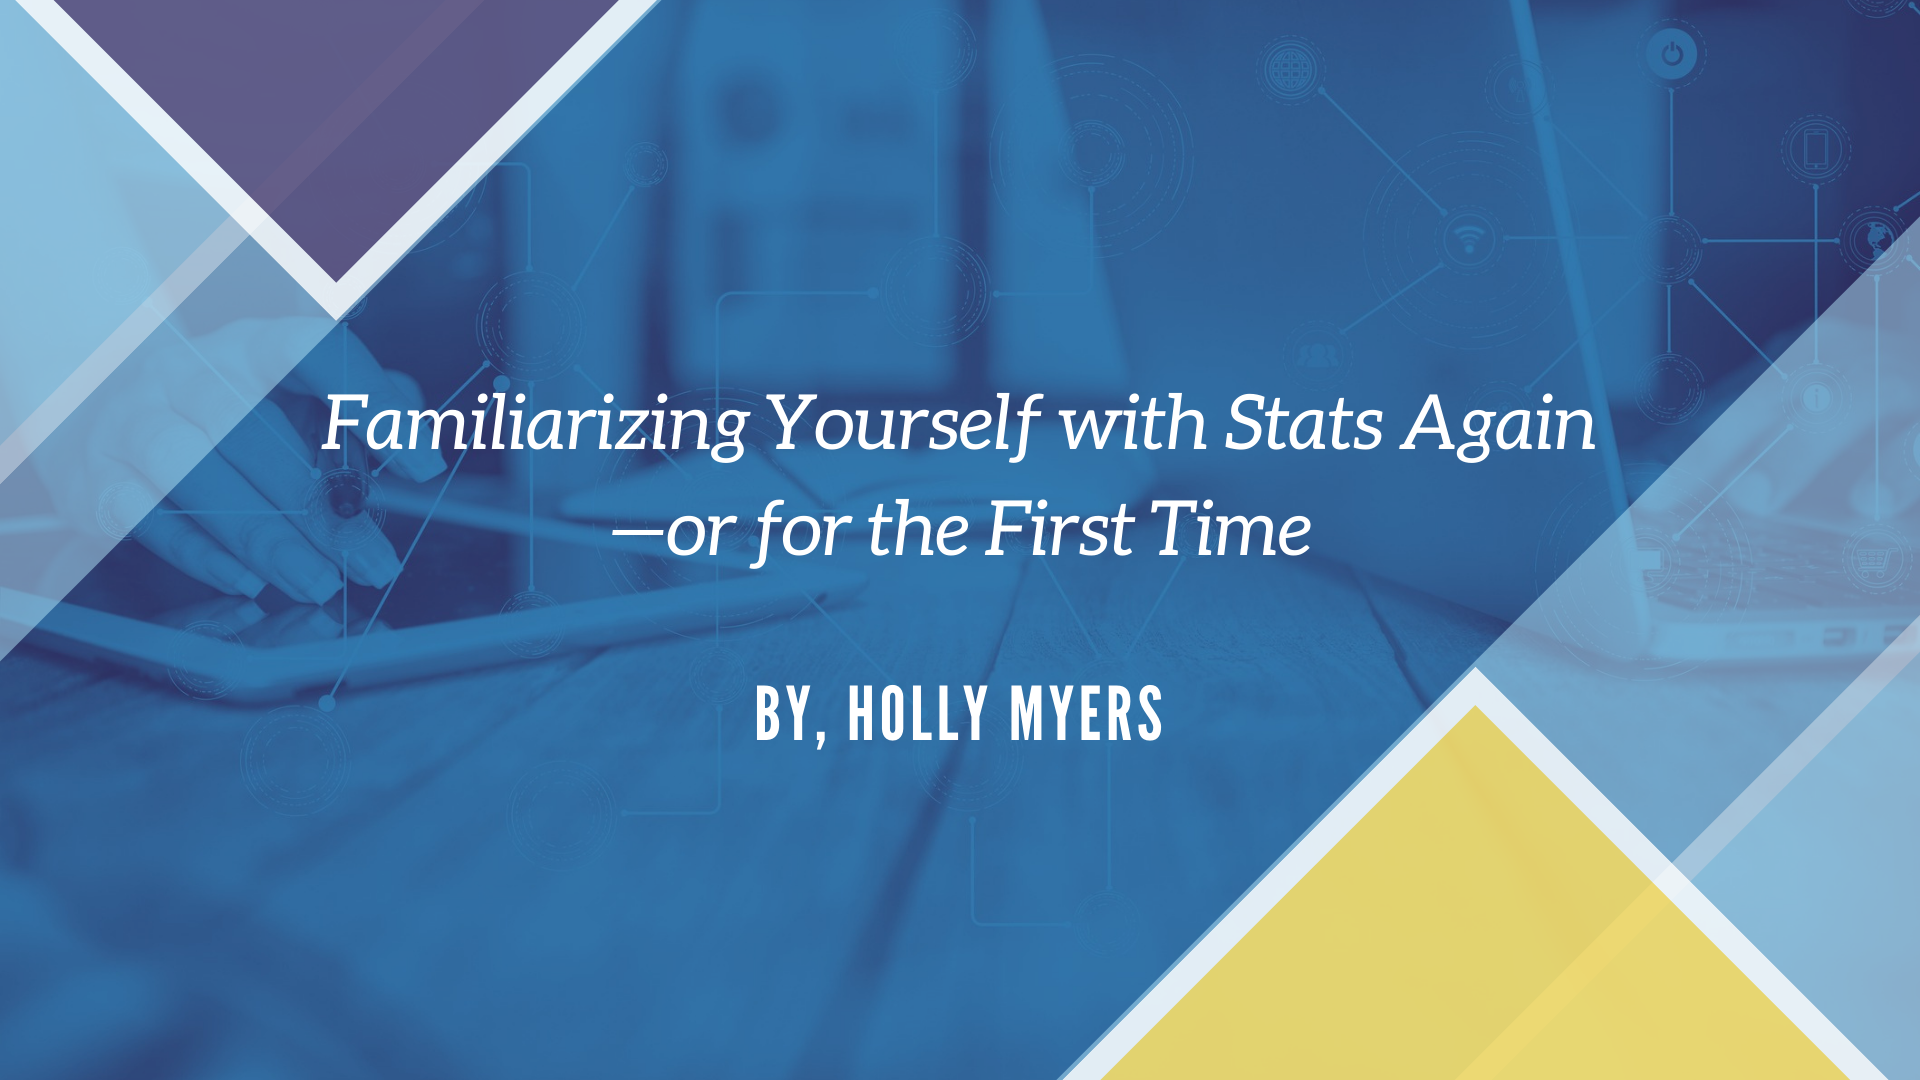 Familiarizing Yourself with Stats Again--or for the First Time (Blog)